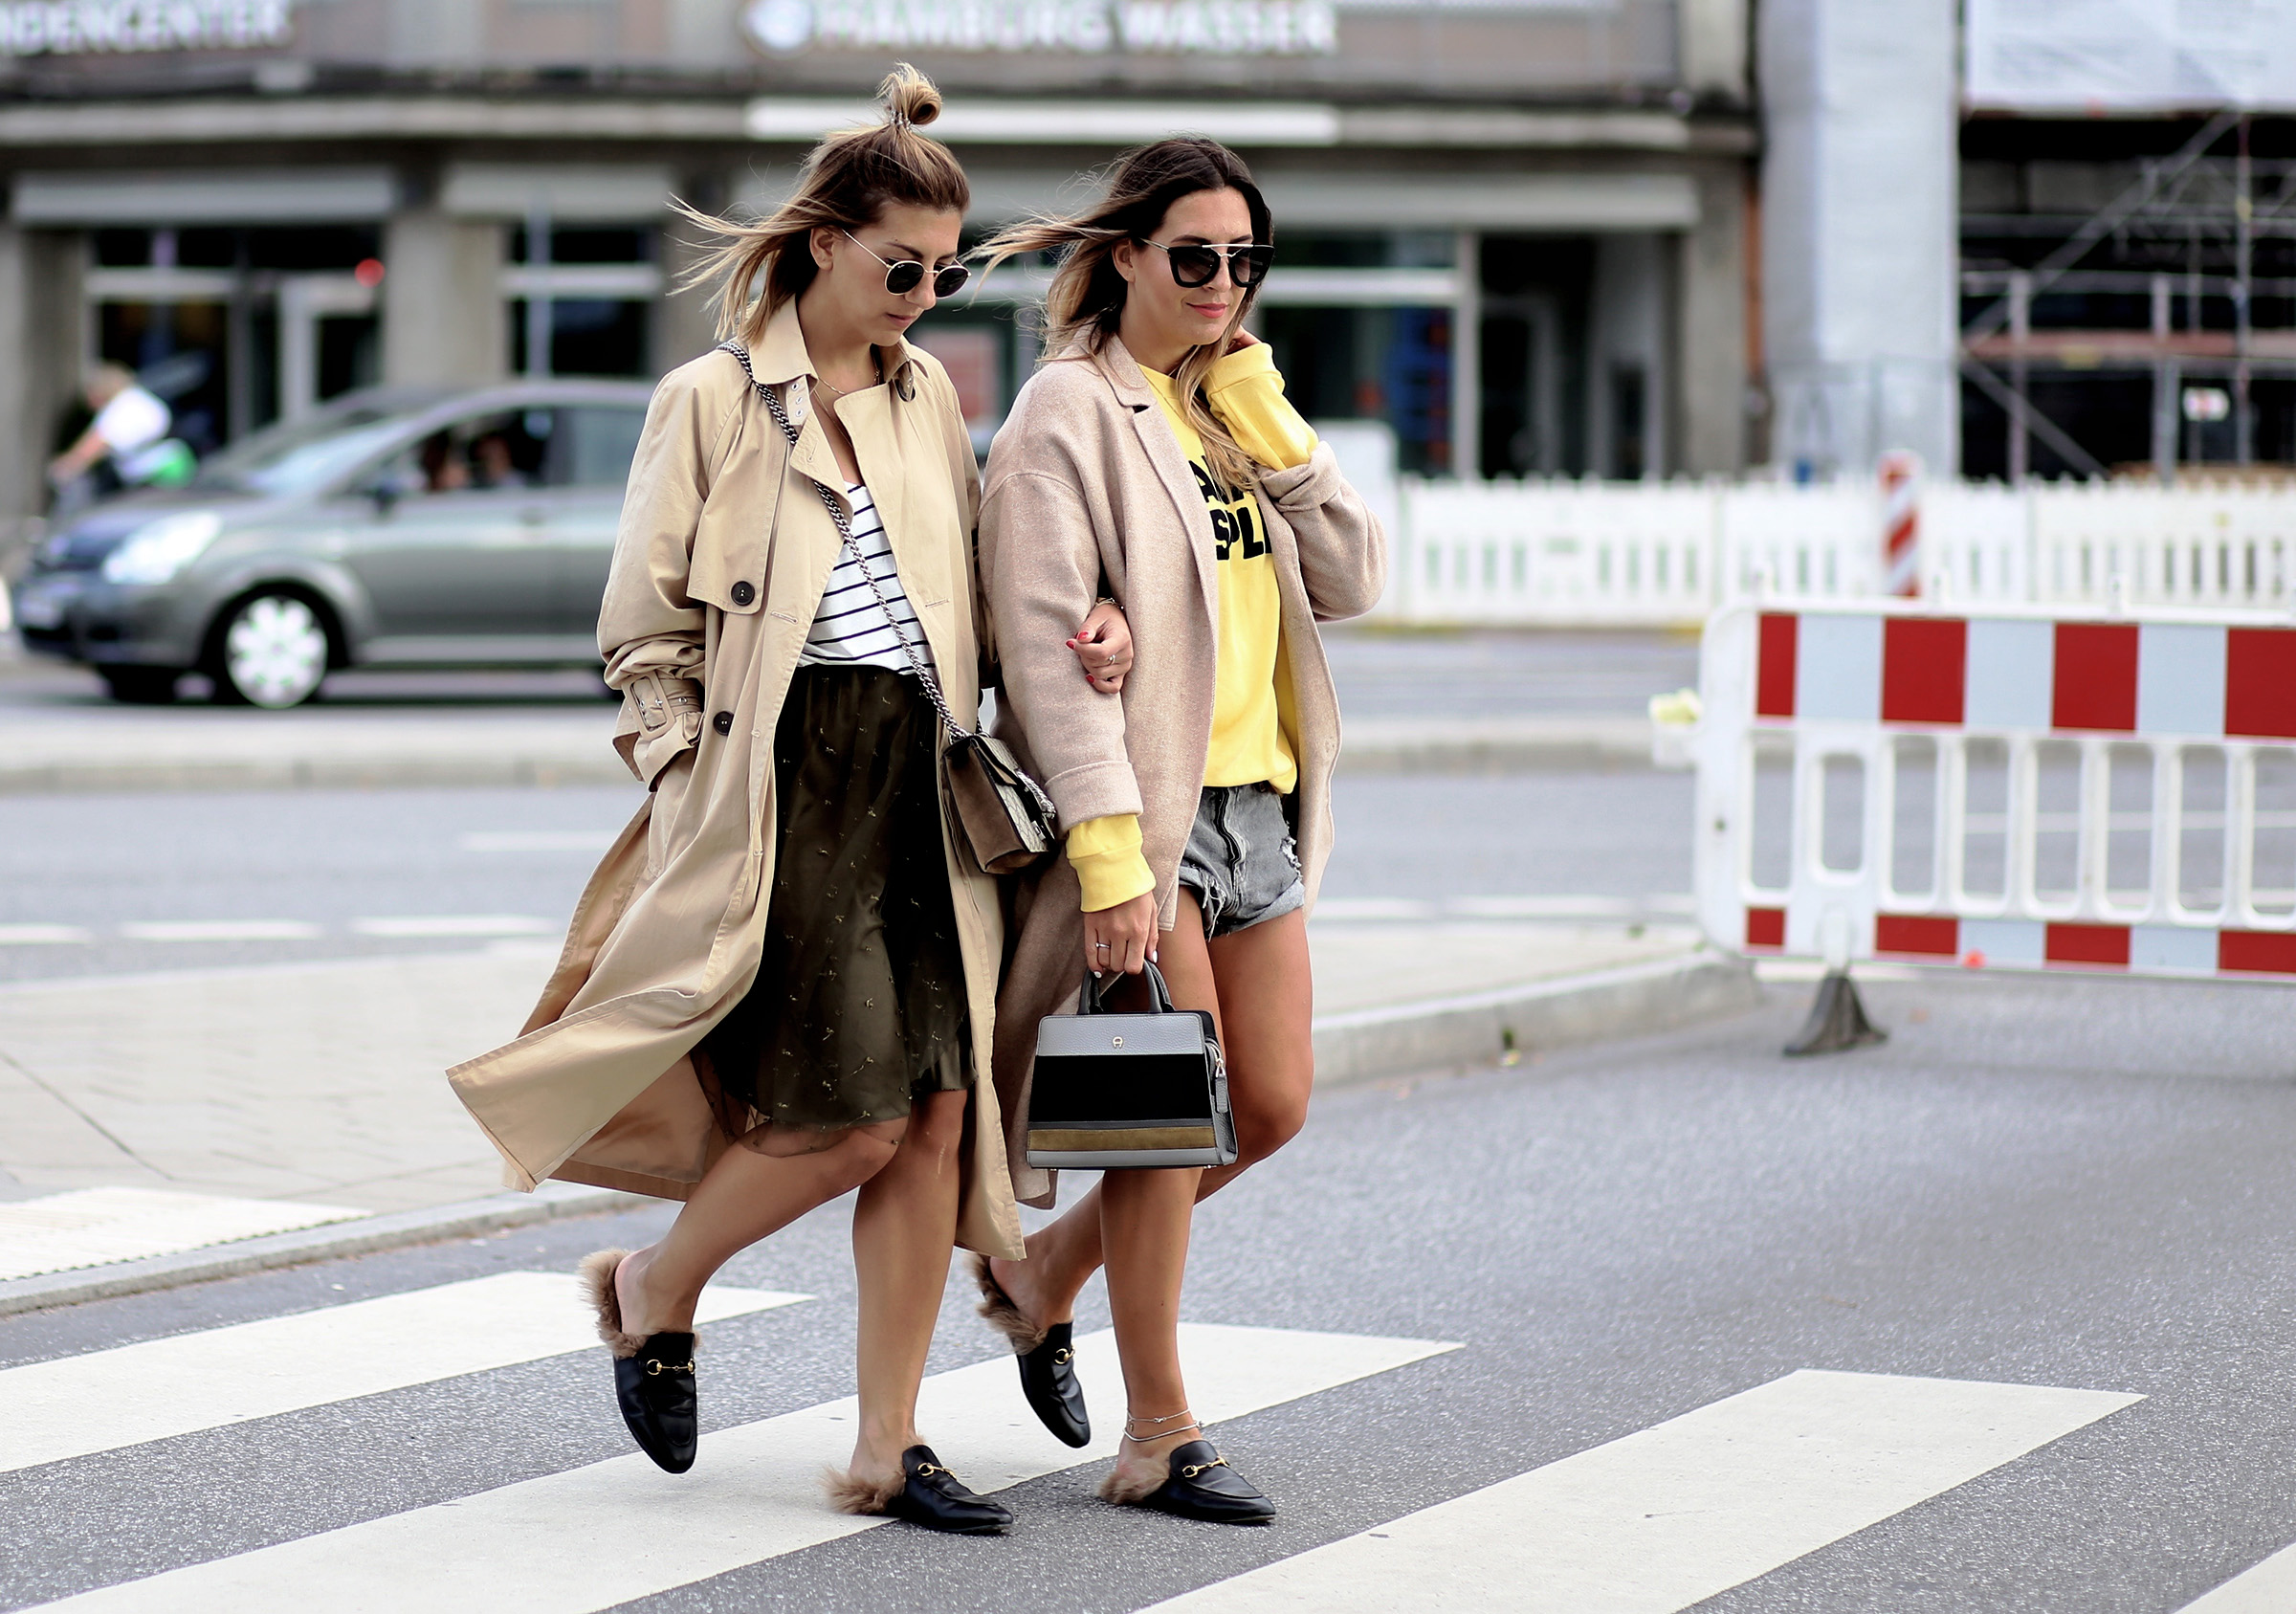 Aylin_Koenig_Black_palms Gucci_Dionysus_mini_tasche Kopie Gucci_bag_Loager_princetown_fur Streetstyle_Hamburg_blogger Kopie Edited_the_label_trench_coat ...